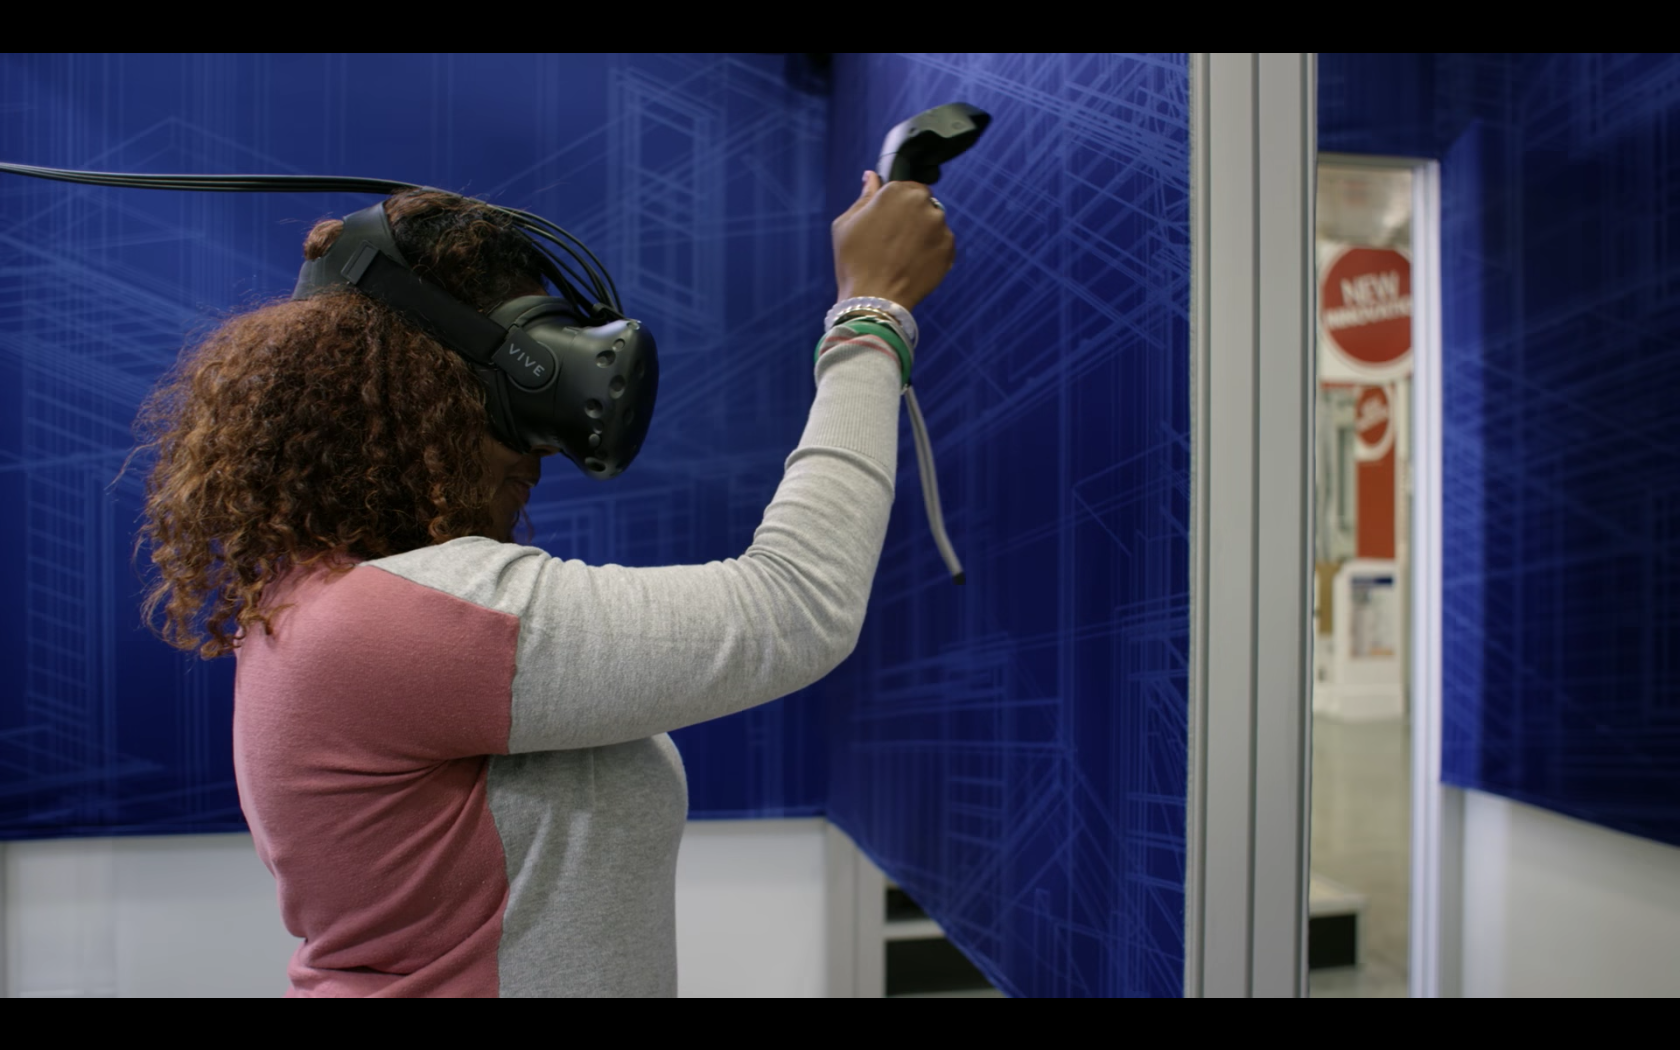 Lowe\'s Uses VR To Teach Customers How To Tile A Bathroom Wall - IPG ...